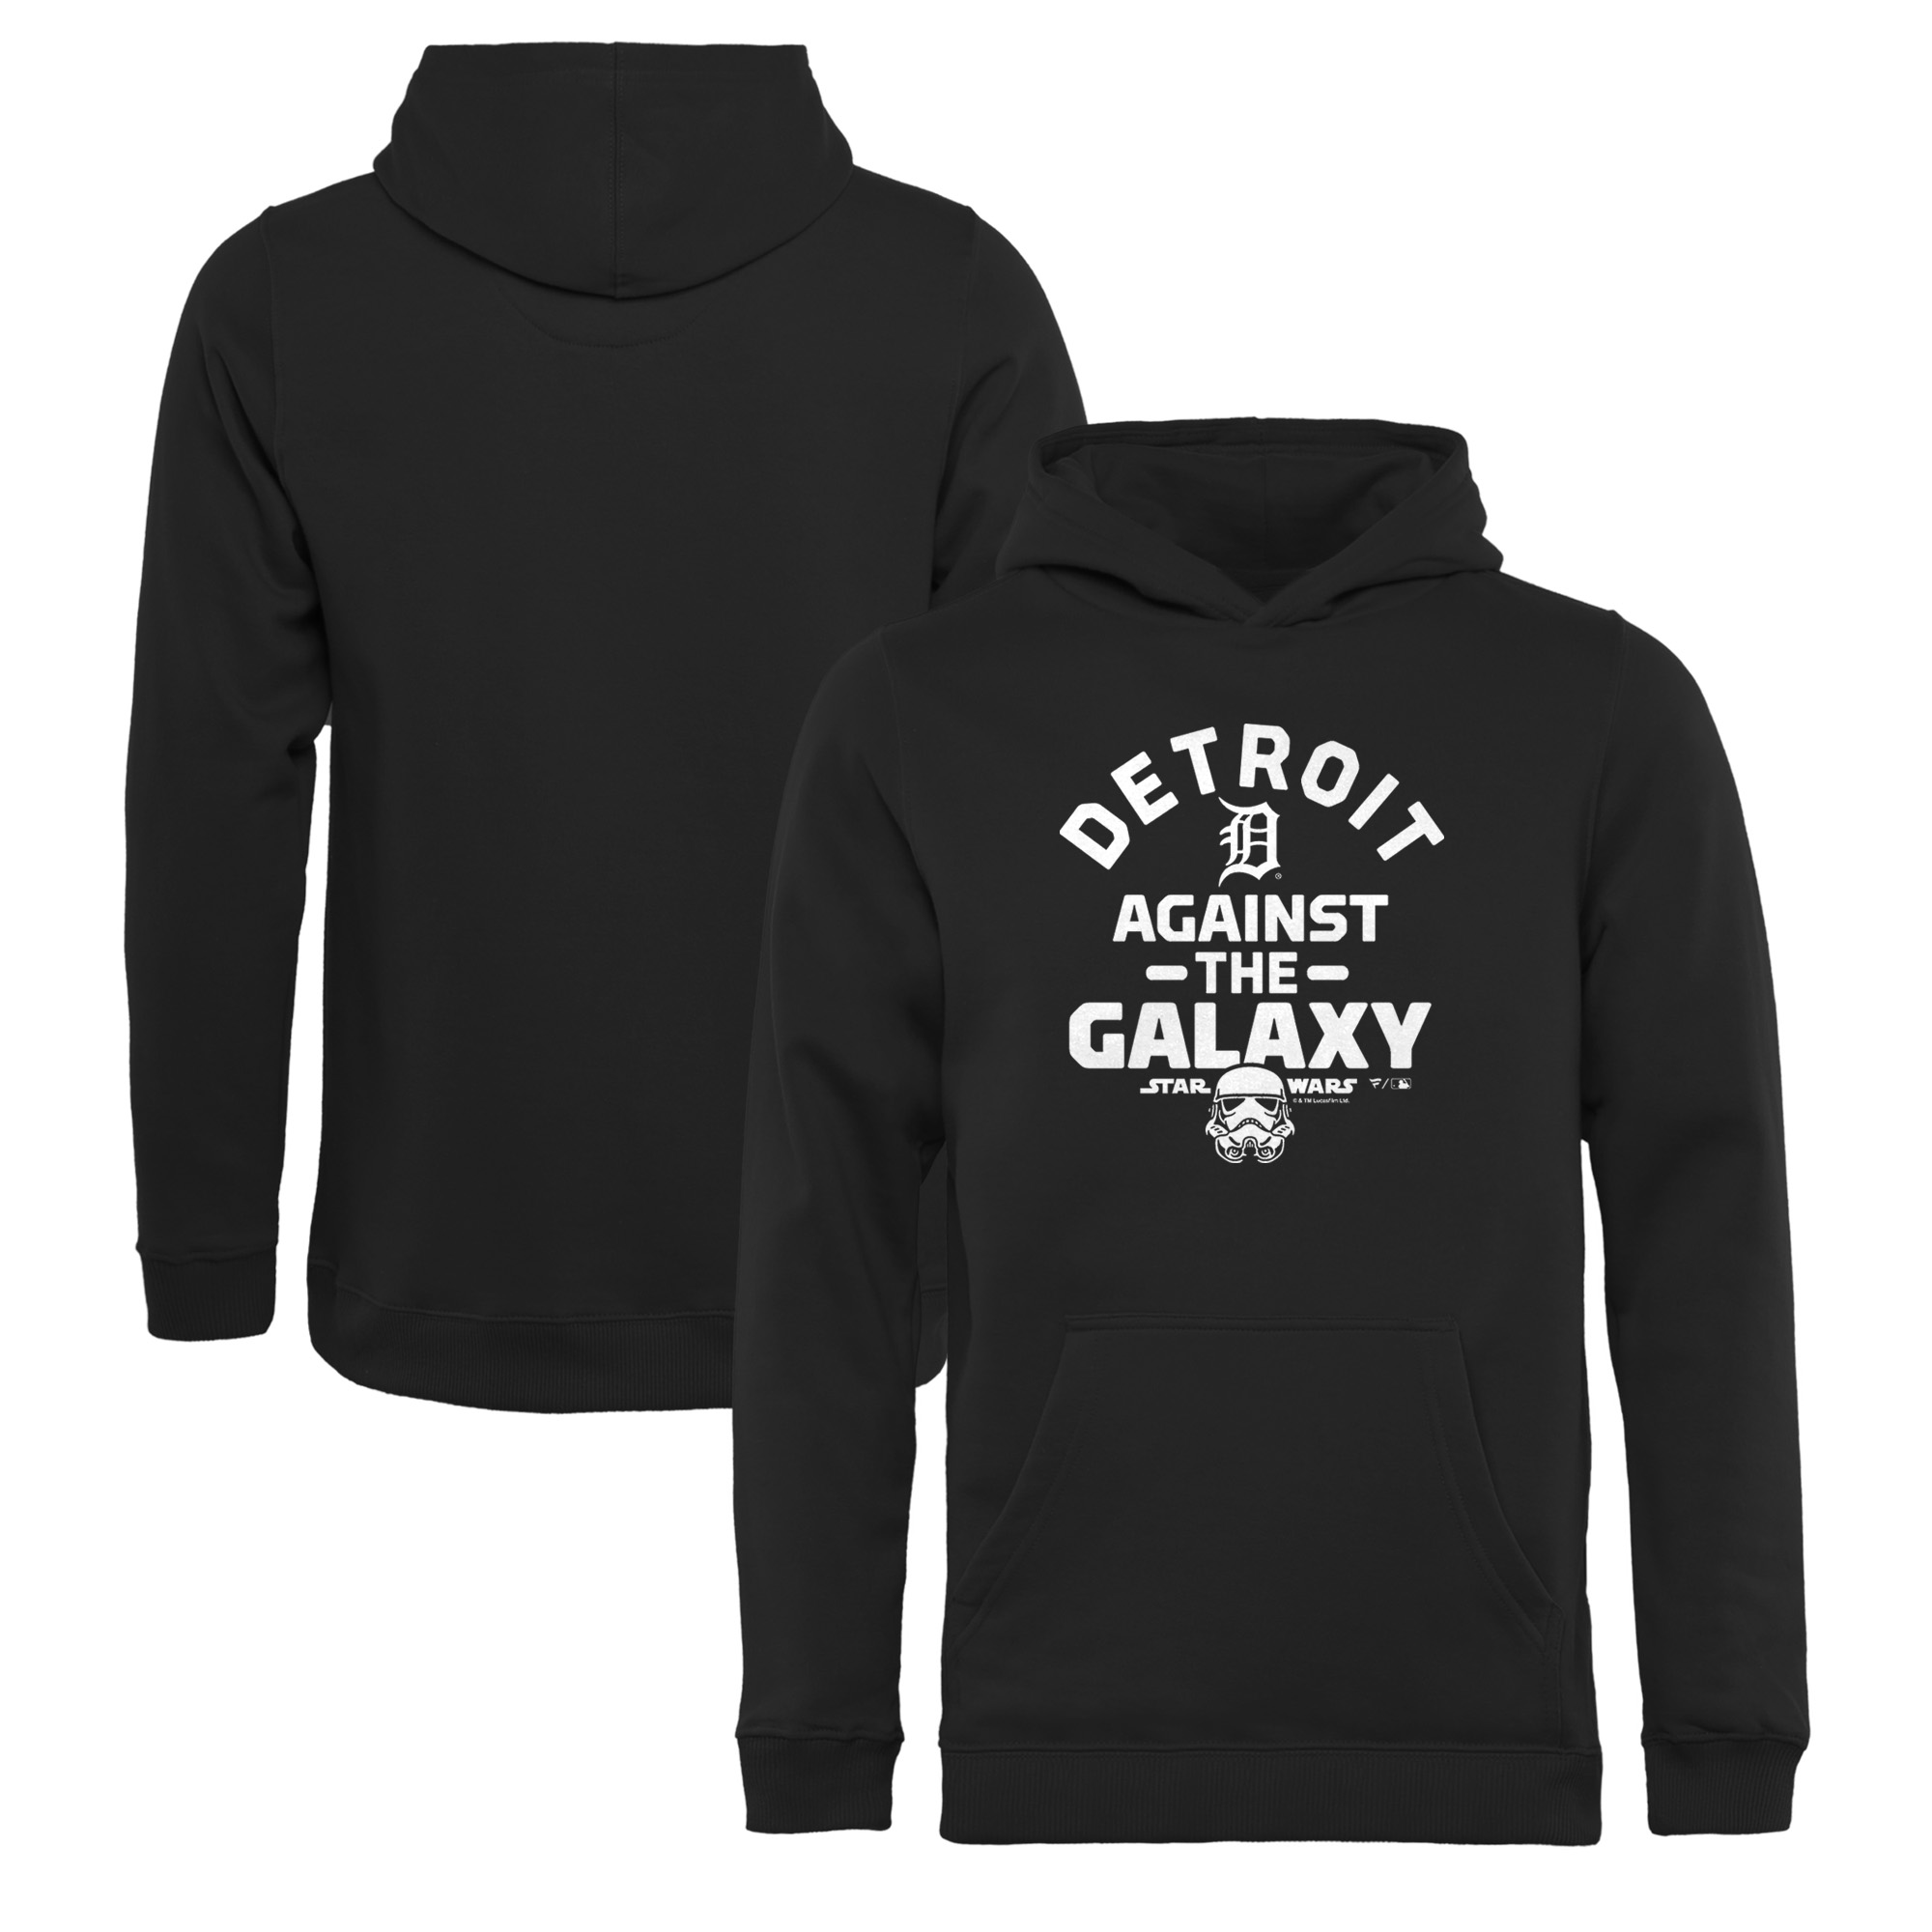 Detroit Tigers Fanatics Branded Youth MLB Star Wars Against The Galaxy Pullover Hoodie - Black